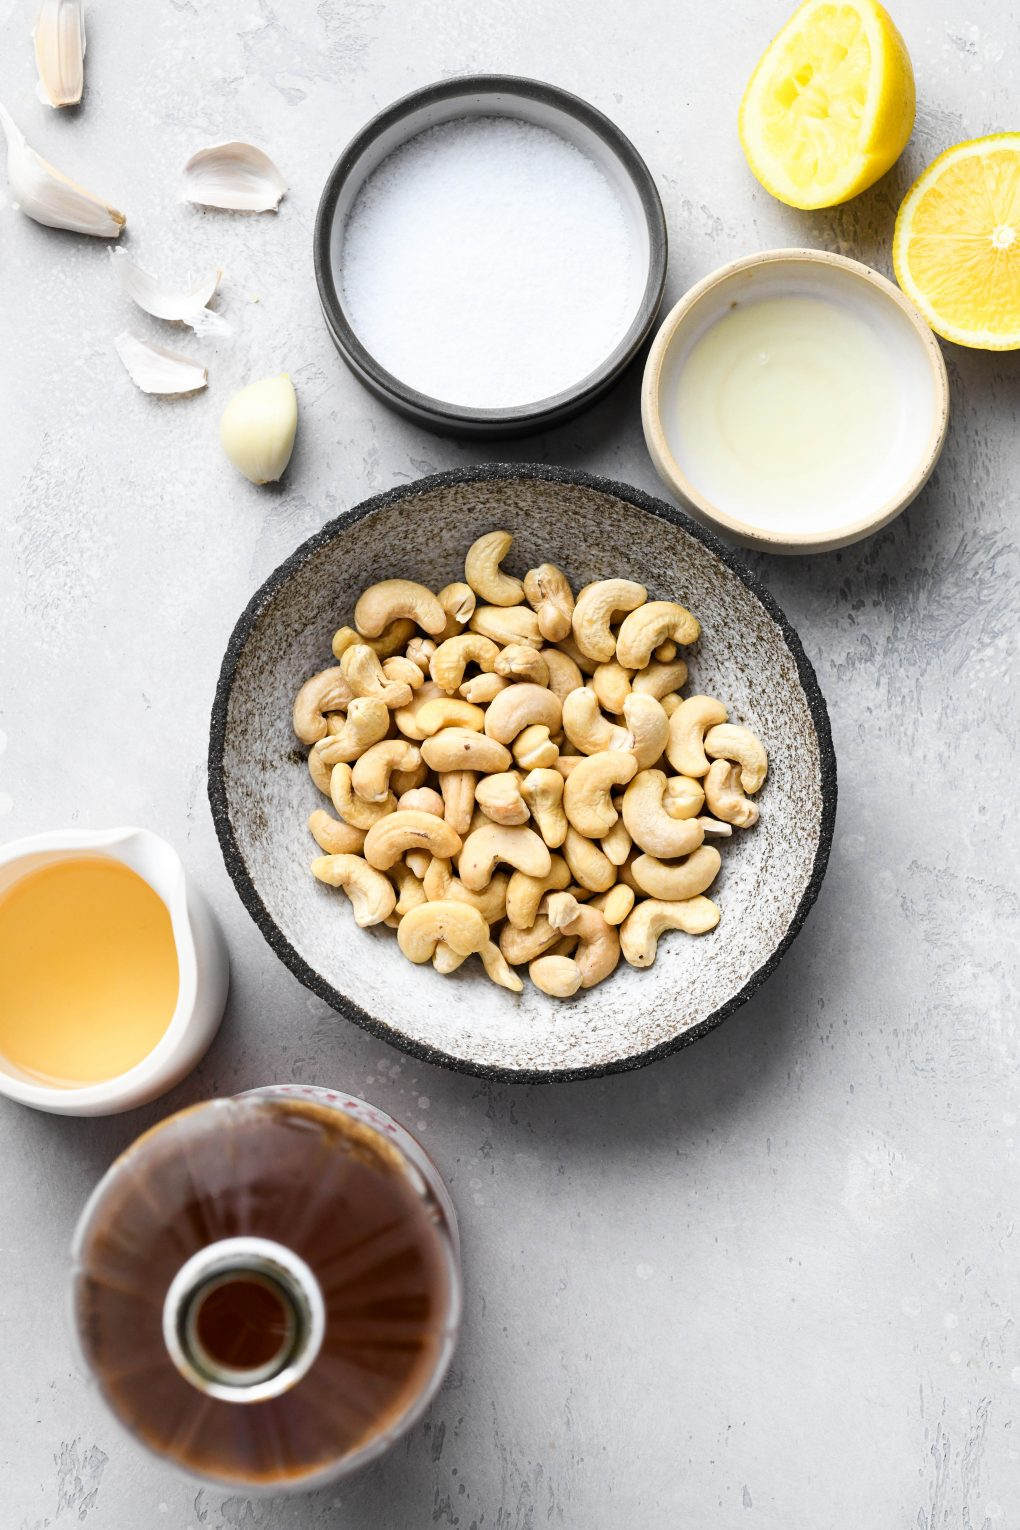 Overhead shot of the ingredients for vegan sour cream - raw cashews in a small rustic looking grey browl, apple cider vinegar, lemon juice, salt, a peeled garlic clove, and some cut lemon wedges. On a light grey textured background.